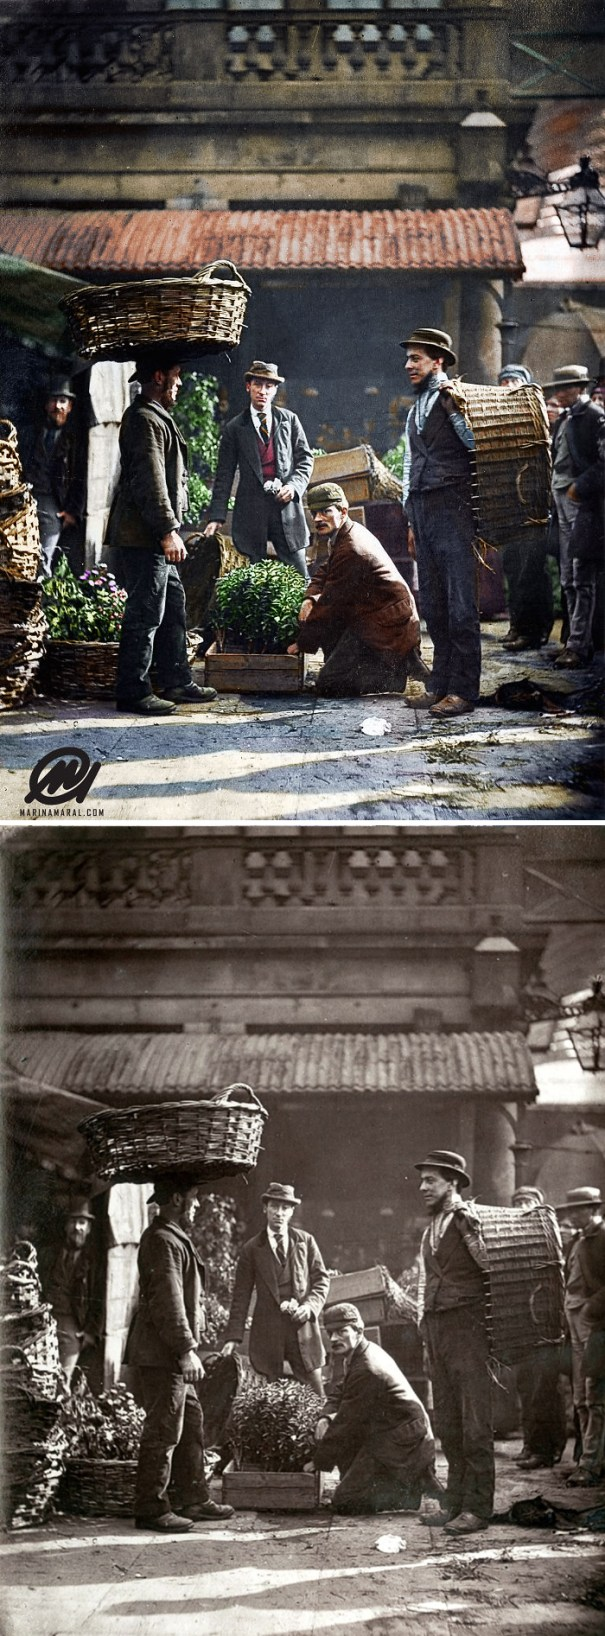 5b6d3b7916a21-colorized-historic-photos-marina-amaral-86-5b6c236c1d92e__700 This Artist Colorizes Old Black & White Photos, And They Will Change The Way People Imagine History Photography Random